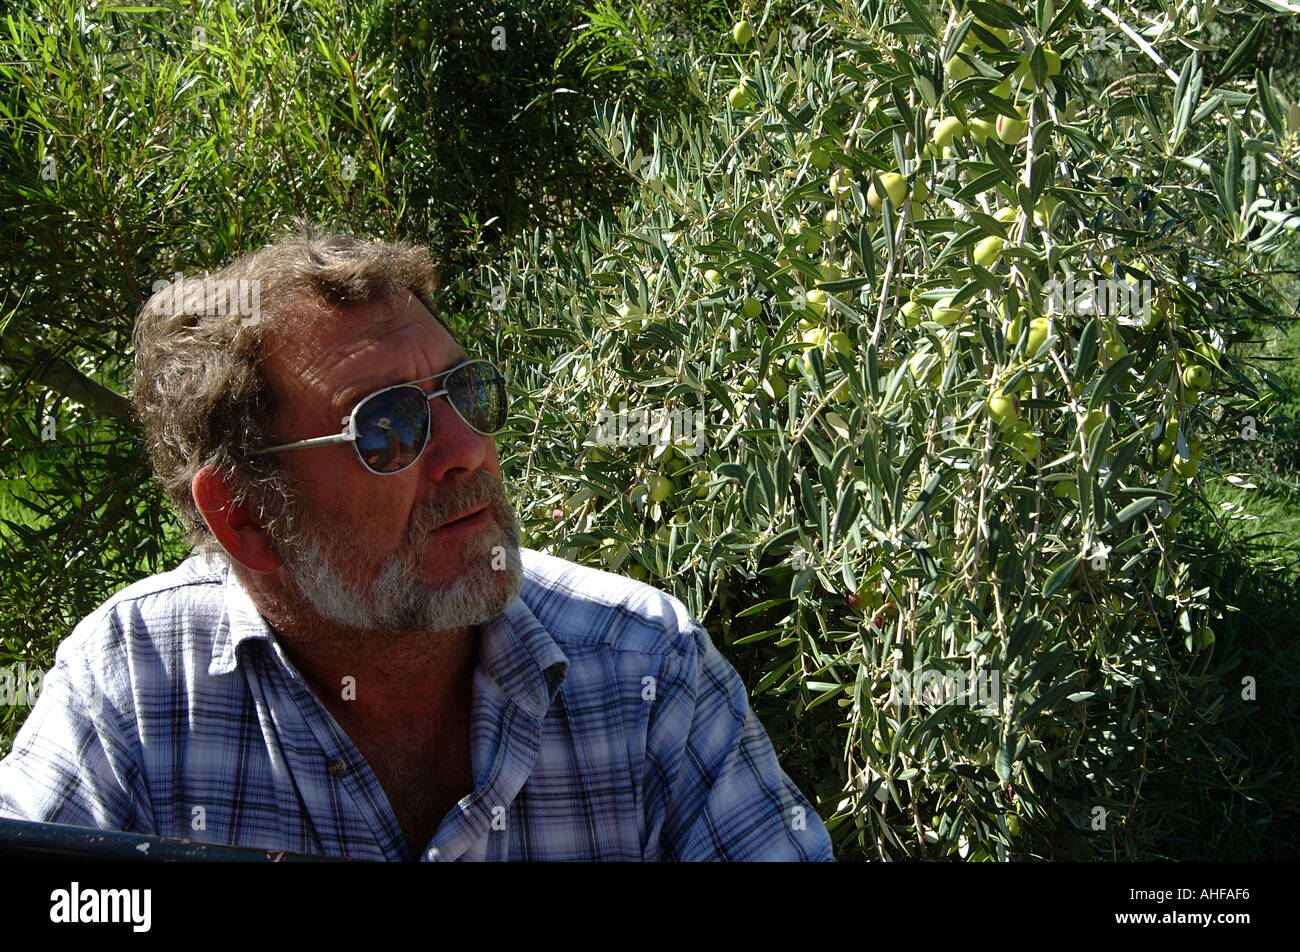 Olive Farming at Prince Albert in The Great Karoo South Africa Olive Farmer with Crop of olives - Stock Image